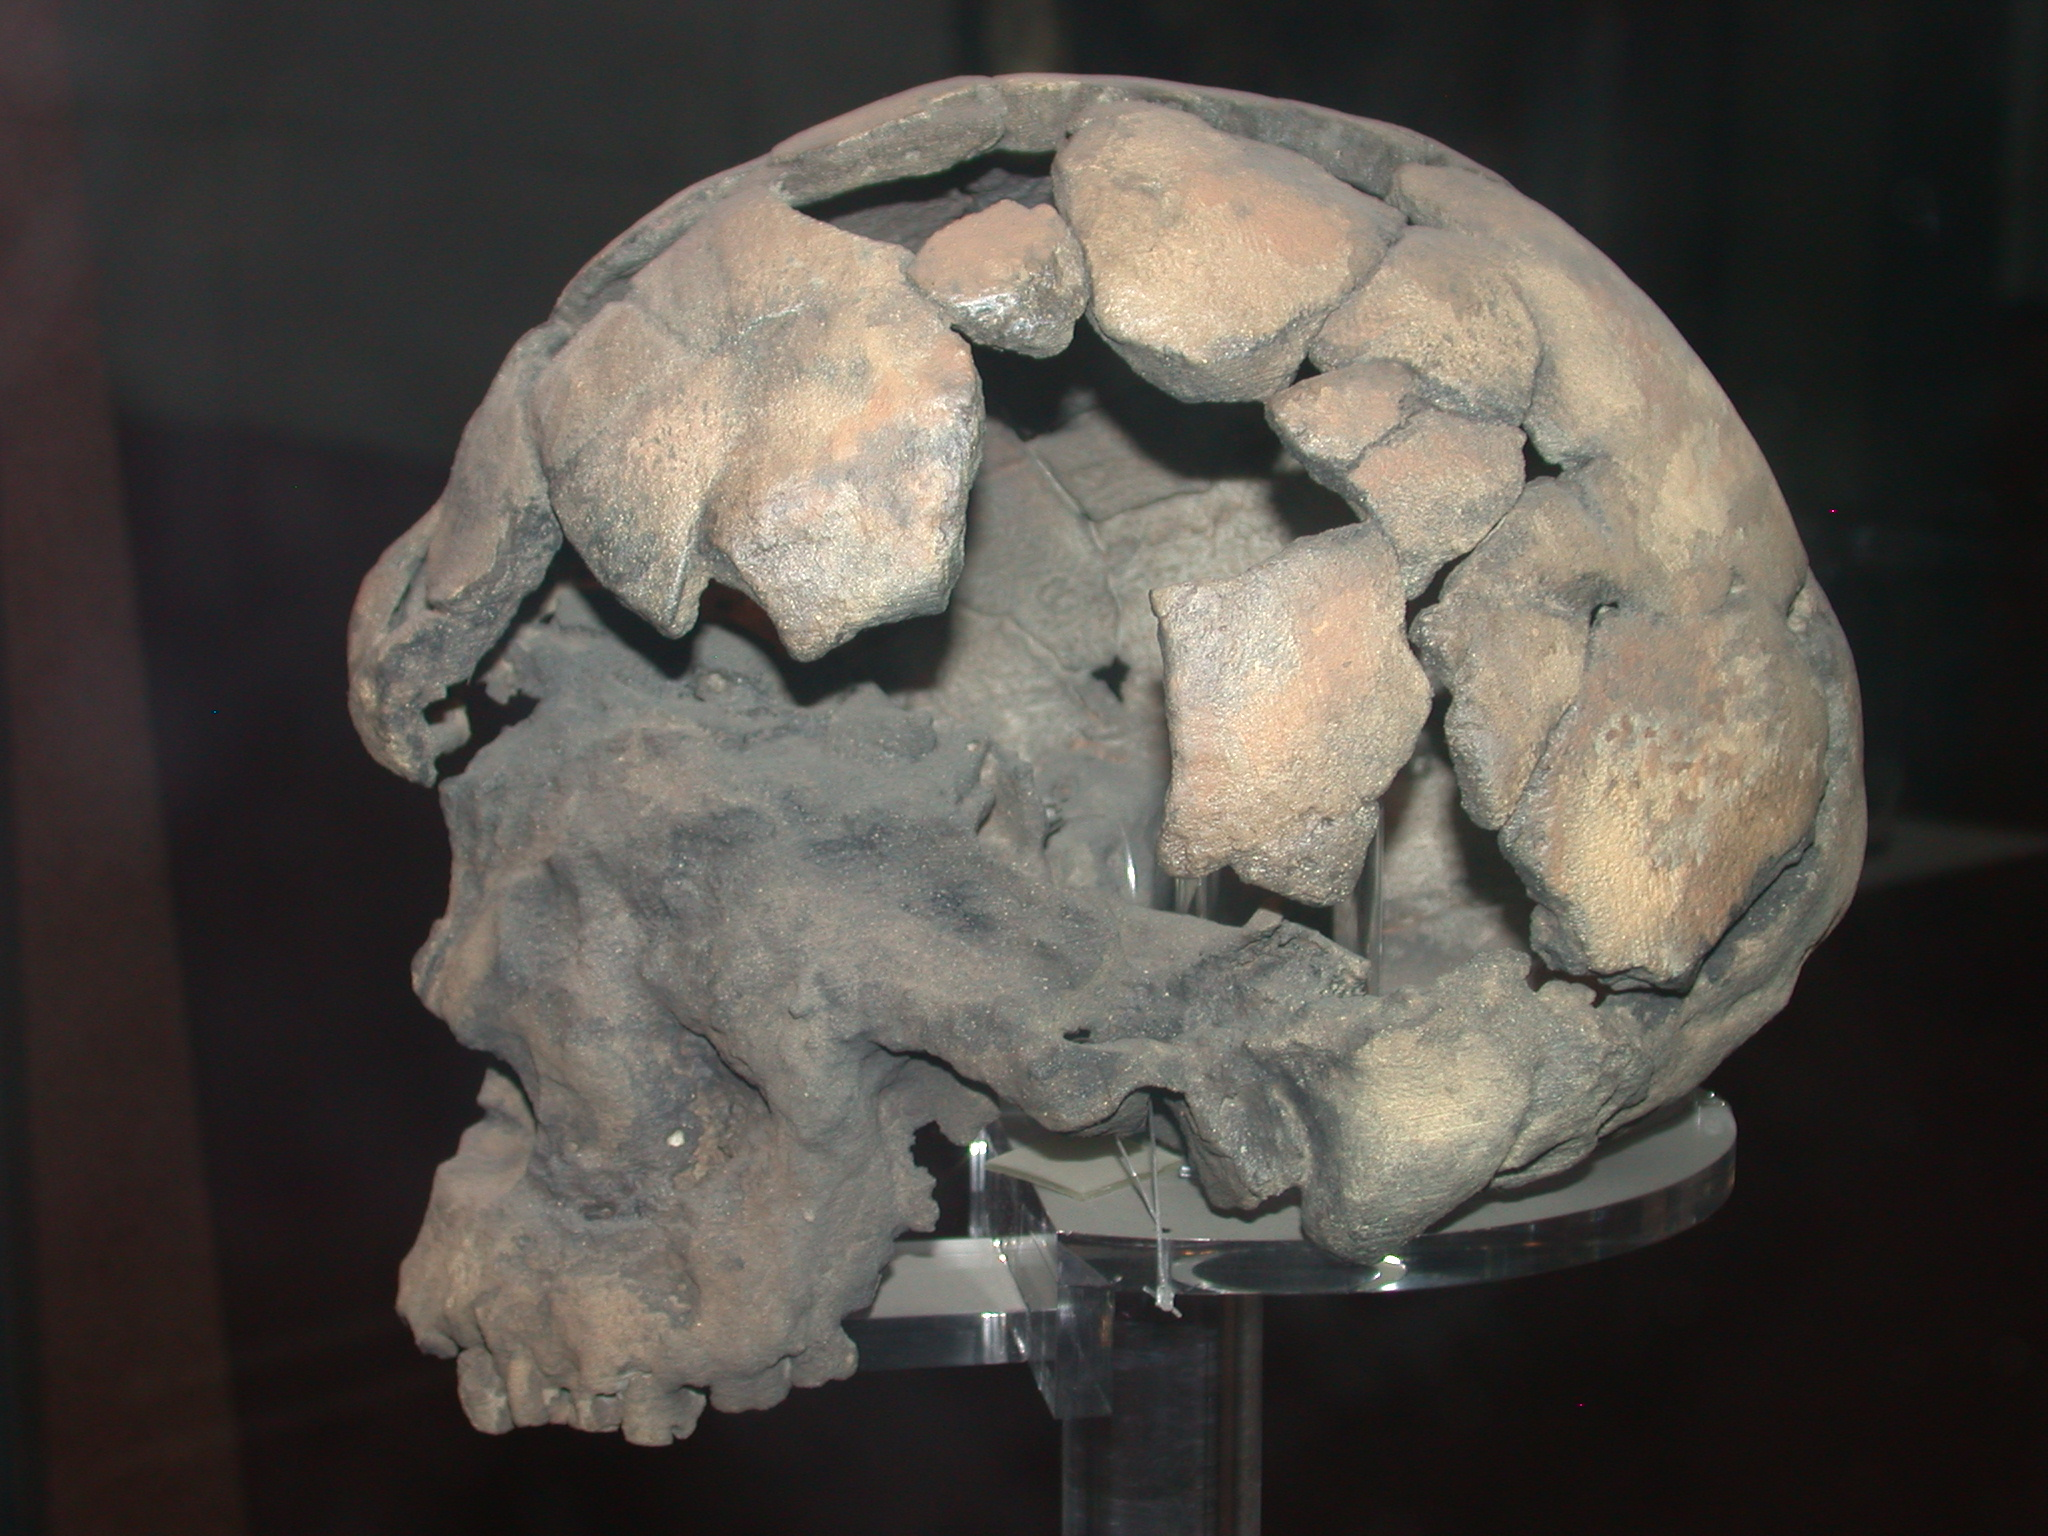 Herto Idaltu Skull Replica View 1, National Museum, Addis Ababa, Ethiopia